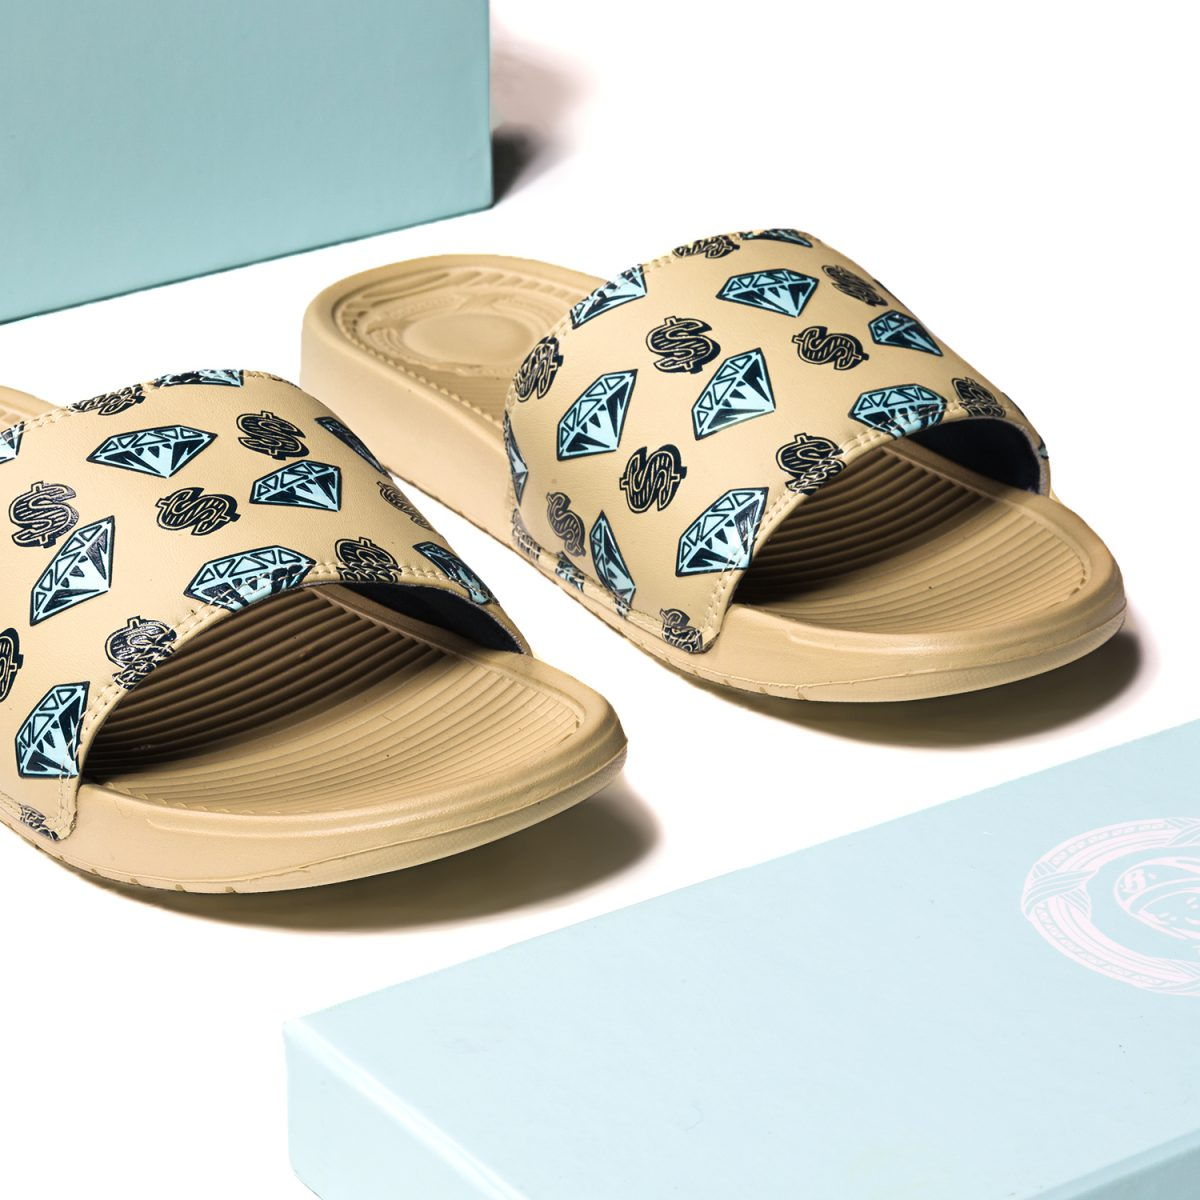 a0d4f37ba560a Limited quantities of the BBC ICECREAM x SANDALBOYZ slides will be  available at the BBC SoHo flagship (7 Mercer St.)